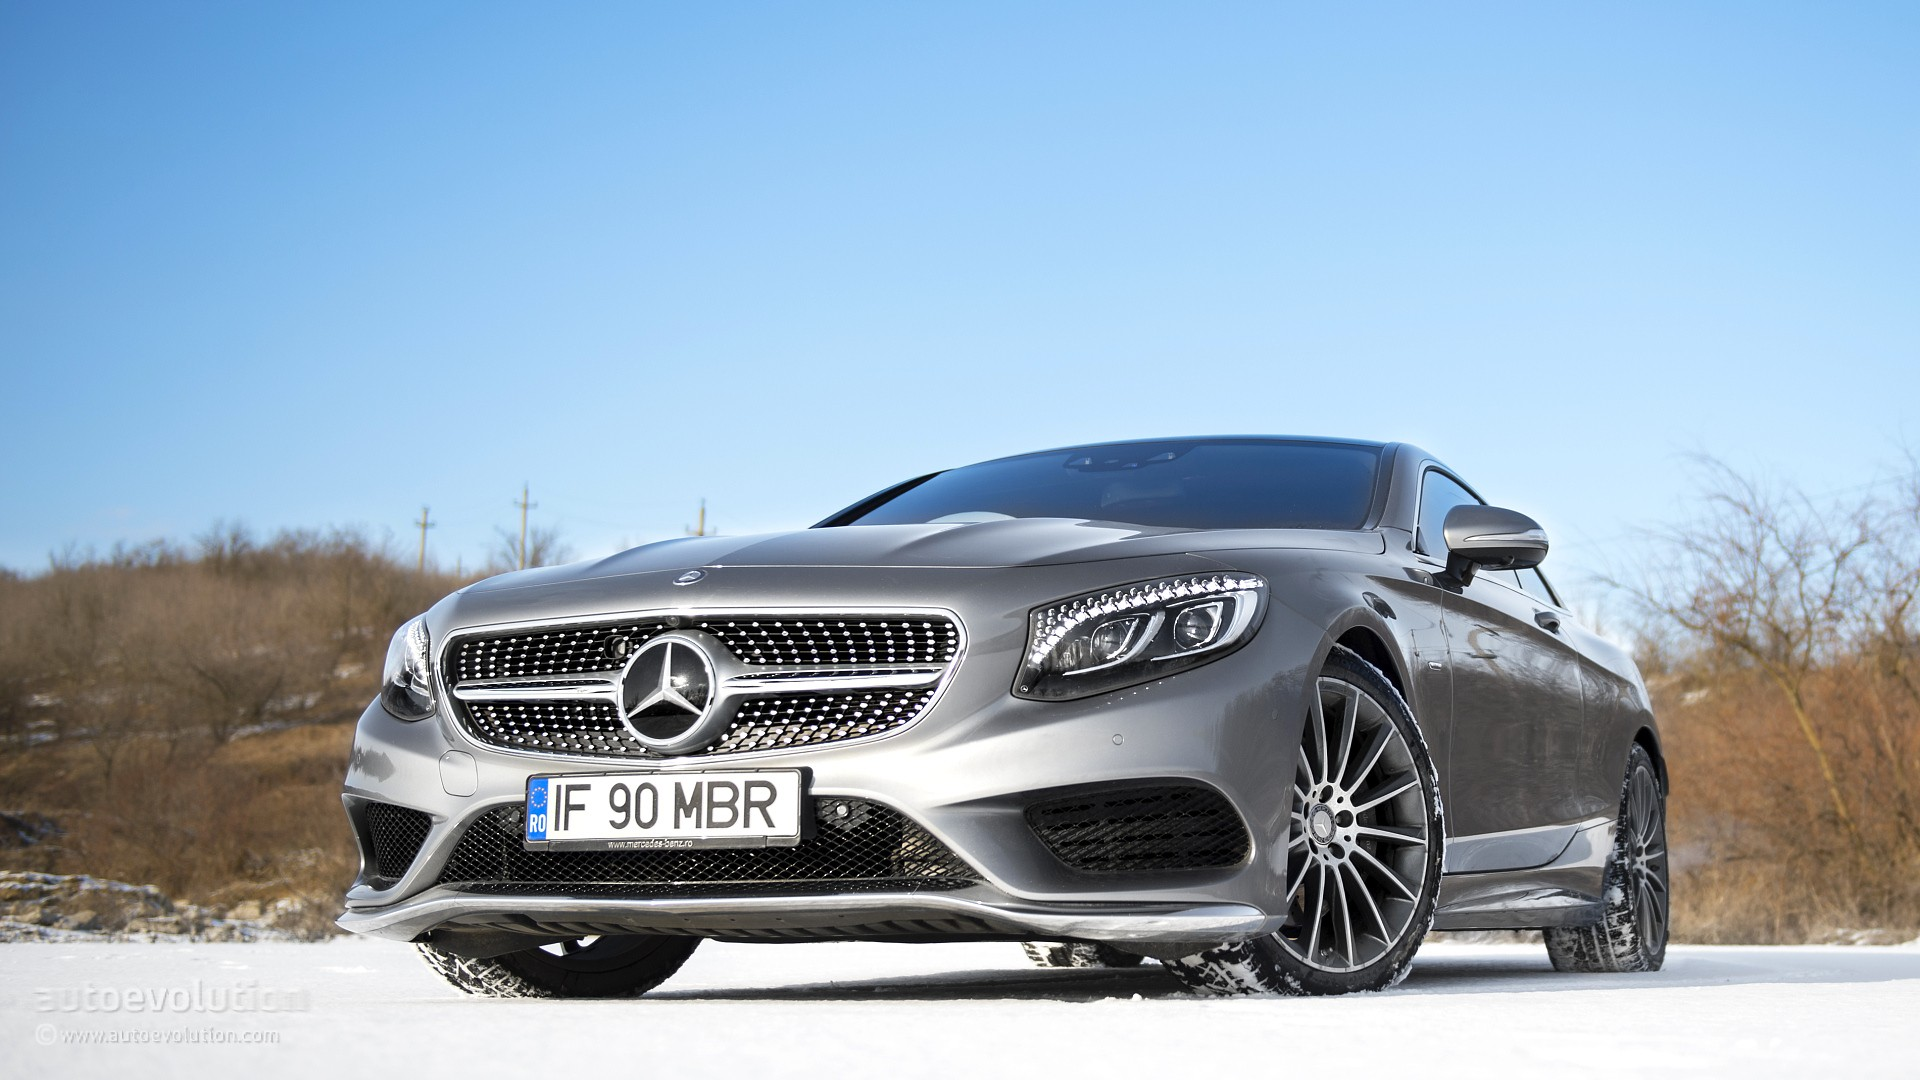 2015 mercedes-benz s-class coupe hd wallpapers: if rodin was a